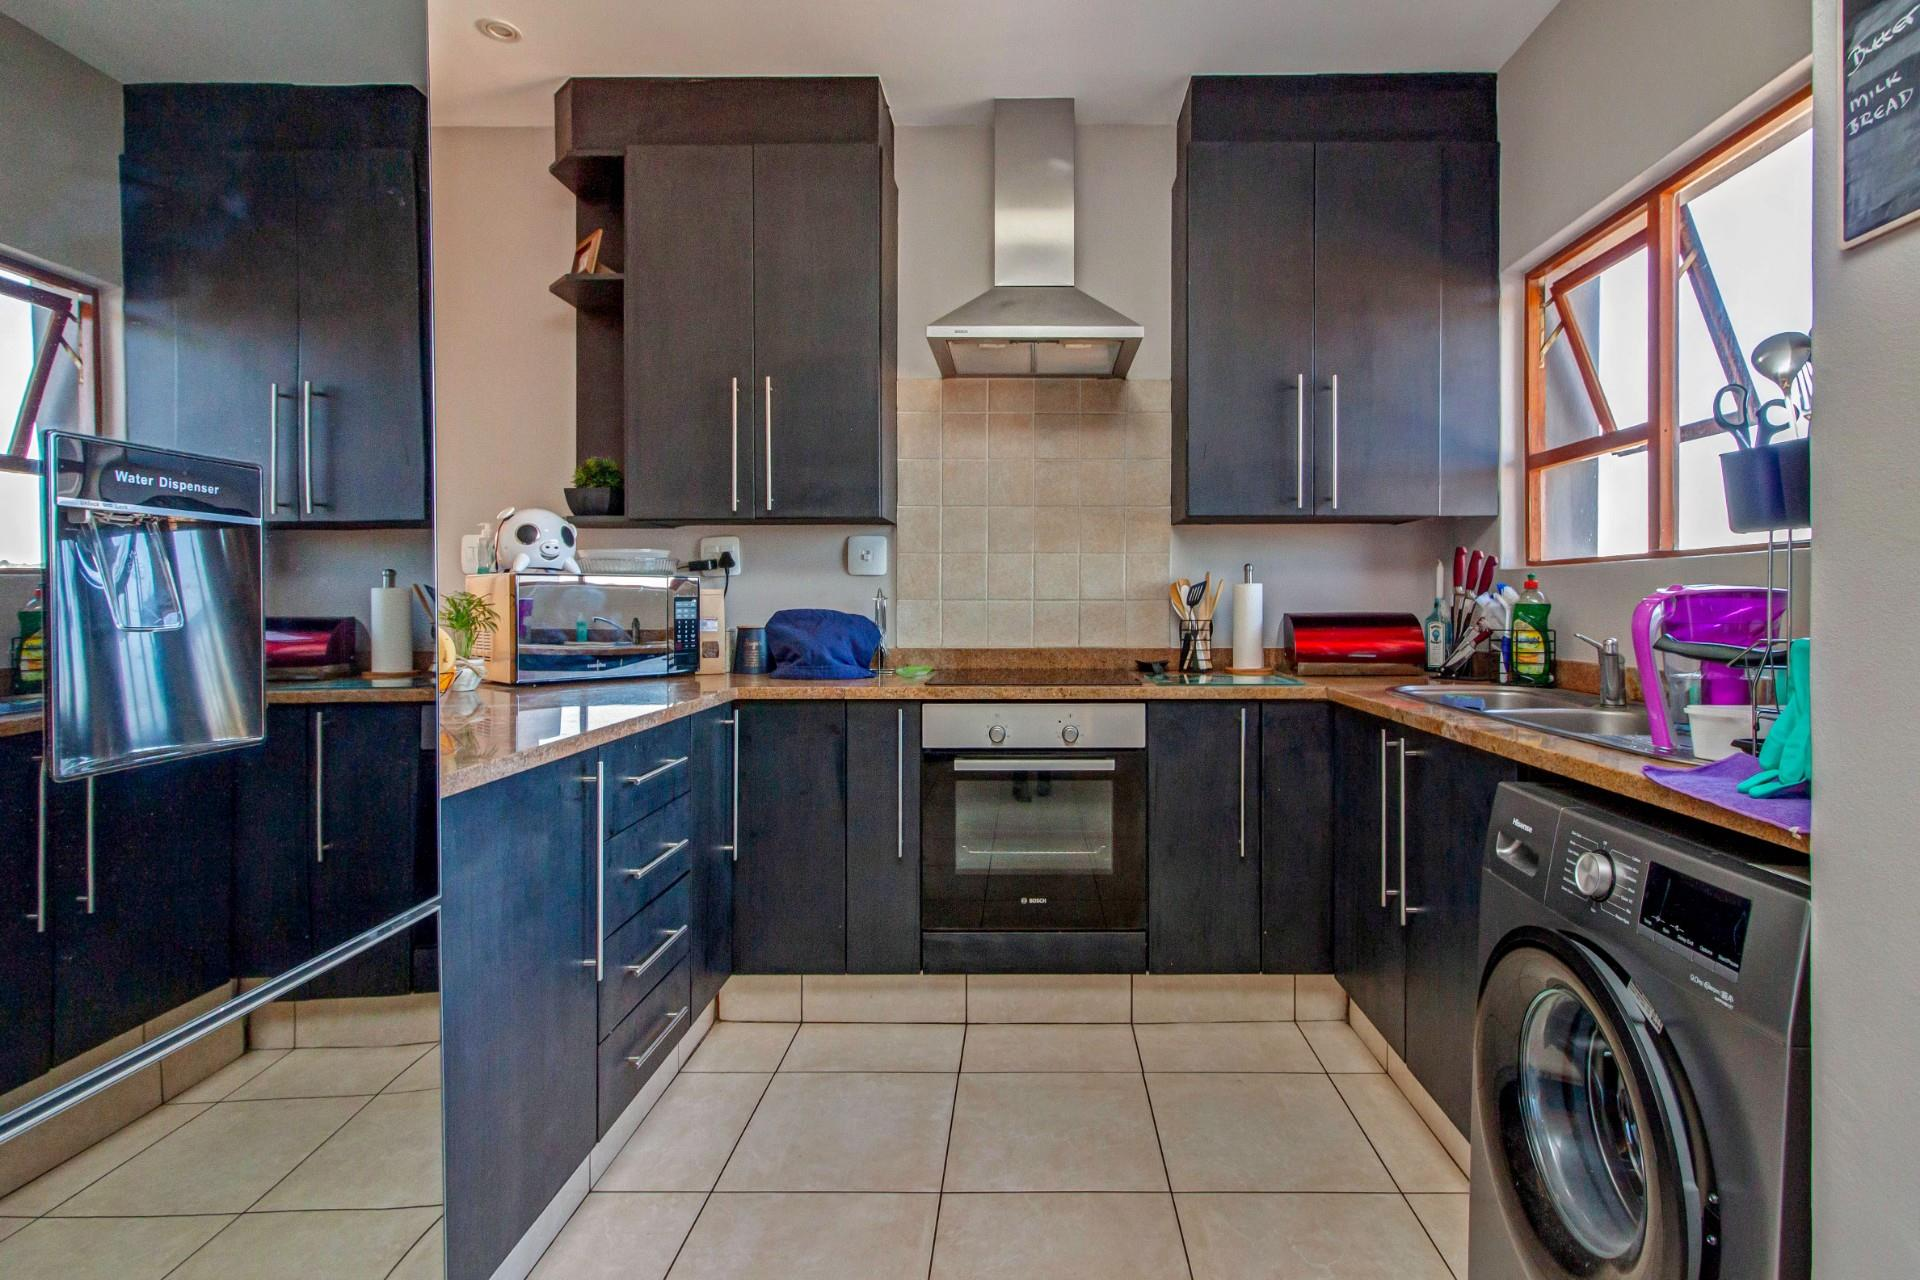 2 Bedroom Apartment / Flat For Sale in Bryanston East